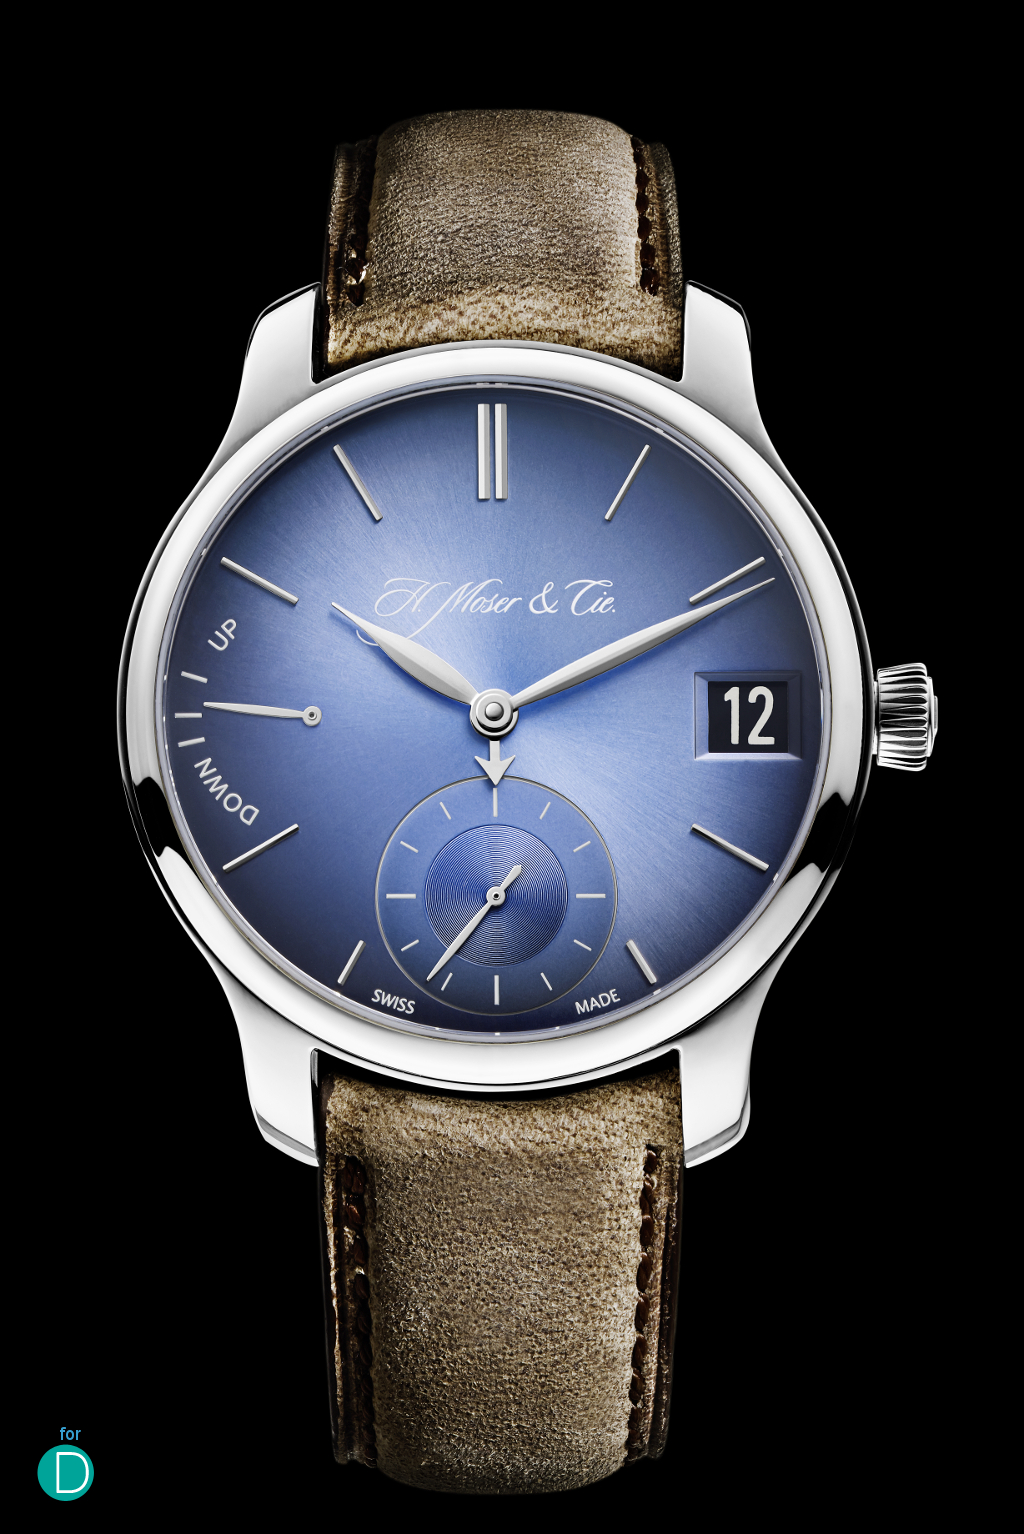 Endeavour_Perpetual_Calendar_Funky_Blue__1341-0207_Soldat_Black_Background_